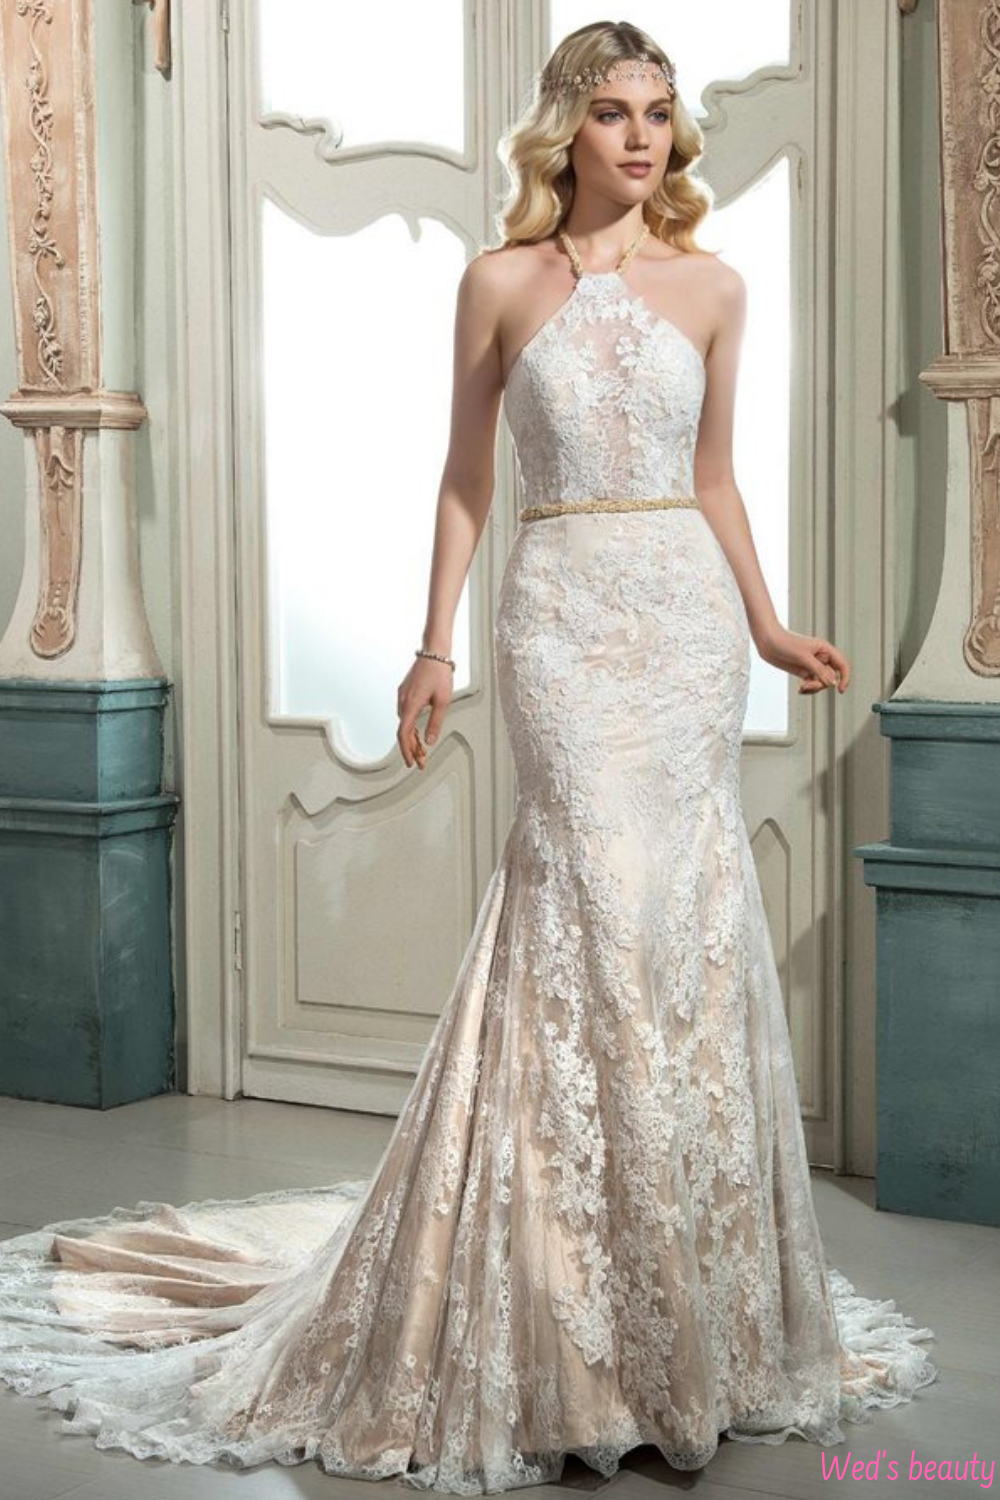 Pin on Mermaid, Sheath, Fit and Flare Wedding Dresses